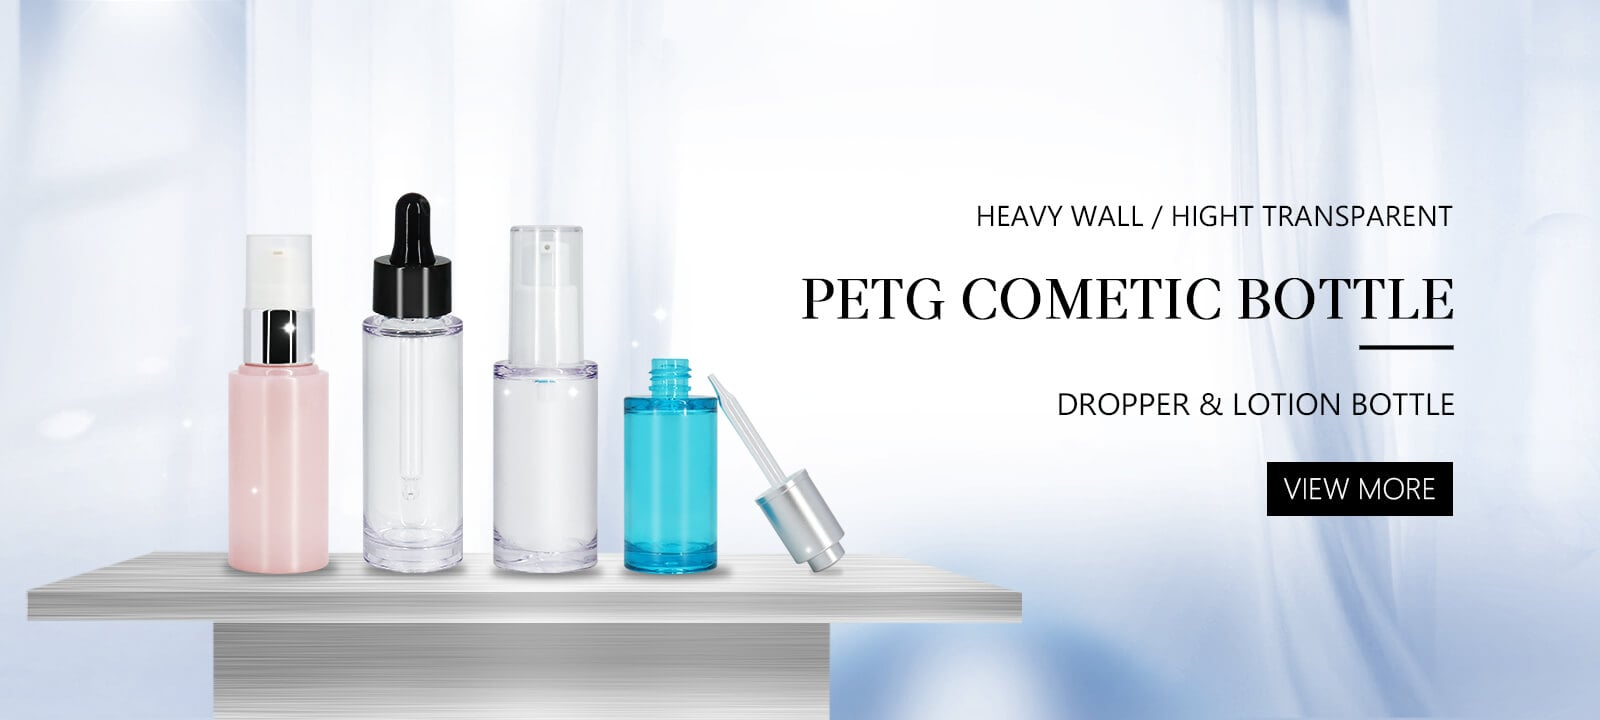 PETD Cosmetic Bottle